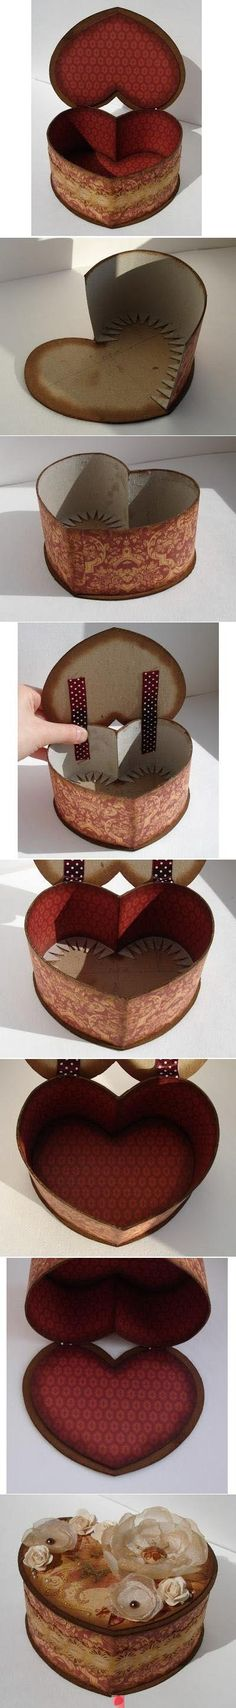 DIY Cardboard Heart Shaped Box DIY Cardboard Heart Shaped Box and Instructions! DIY Cardboard Heart Shaped Box DIY Cardboard Heart Shaped Box and Instructions! Diy Projects To Try, Craft Projects, Diy Paper, Paper Crafts, Fun Crafts, Diy And Crafts, Carton Diy, Ideias Diy, Cardboard Crafts